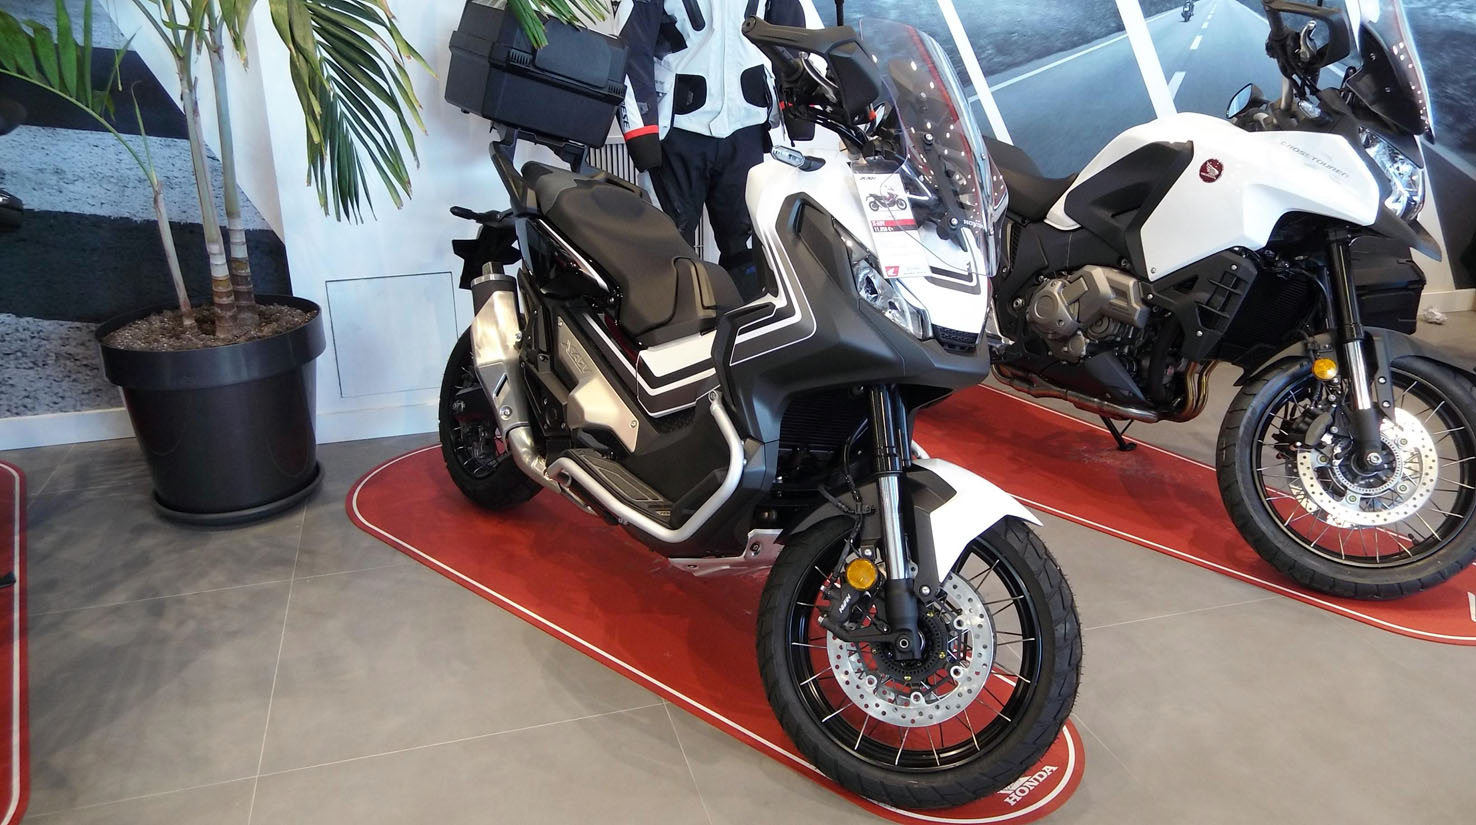 Honda X-ADV Color Blanco Perla Glare Mate